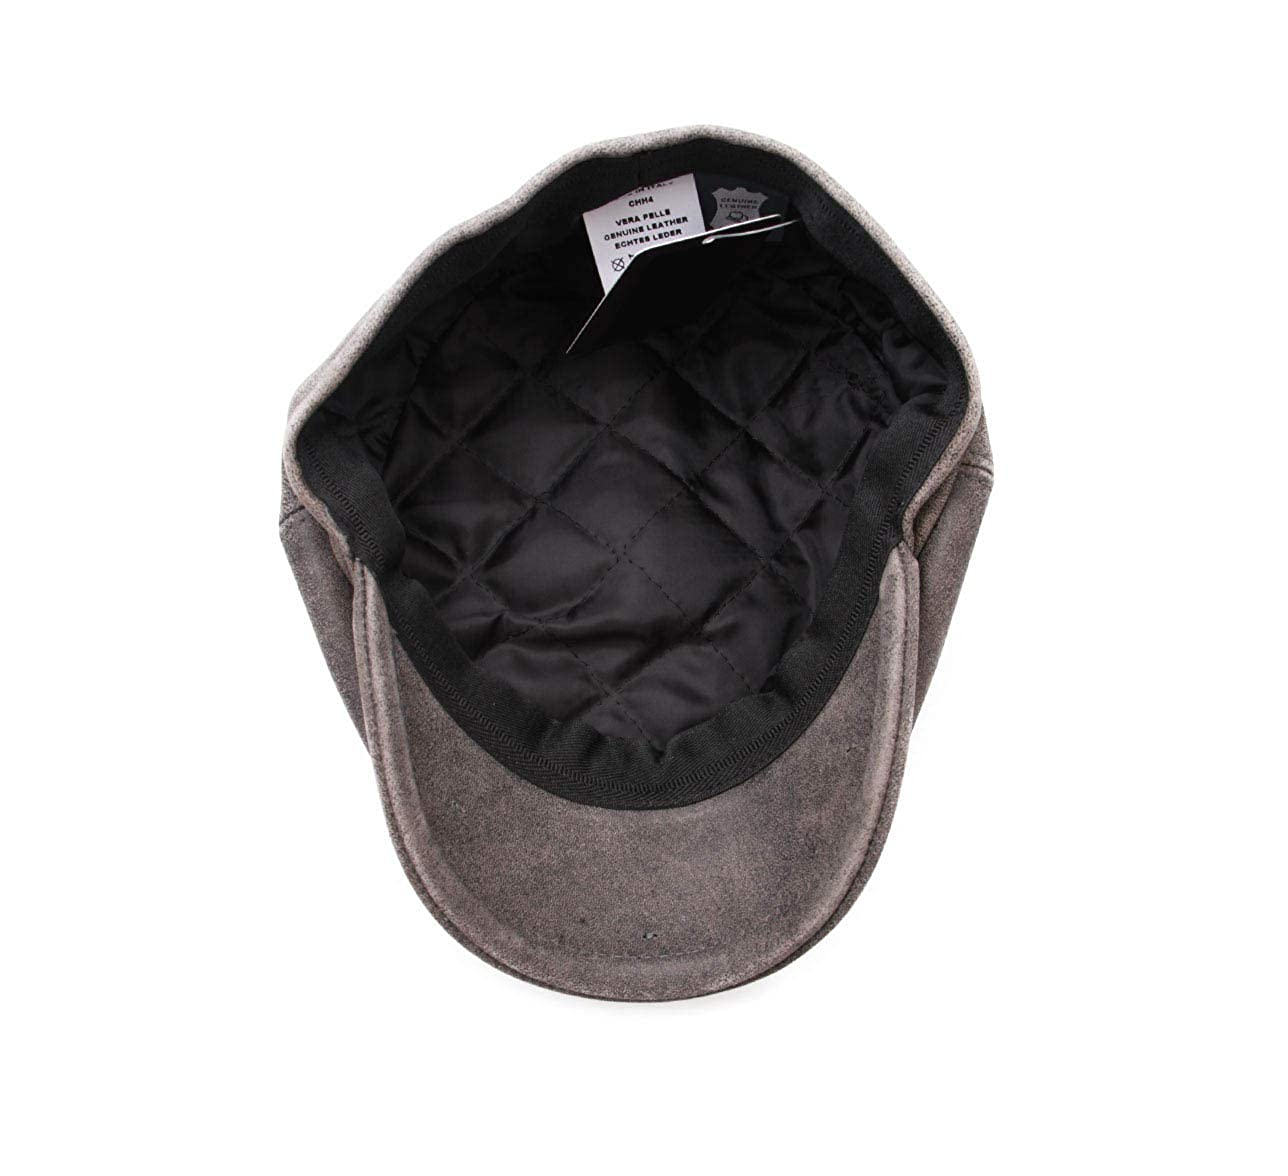 Classic Italy Maxim Leather Flat Cap Water Repellent